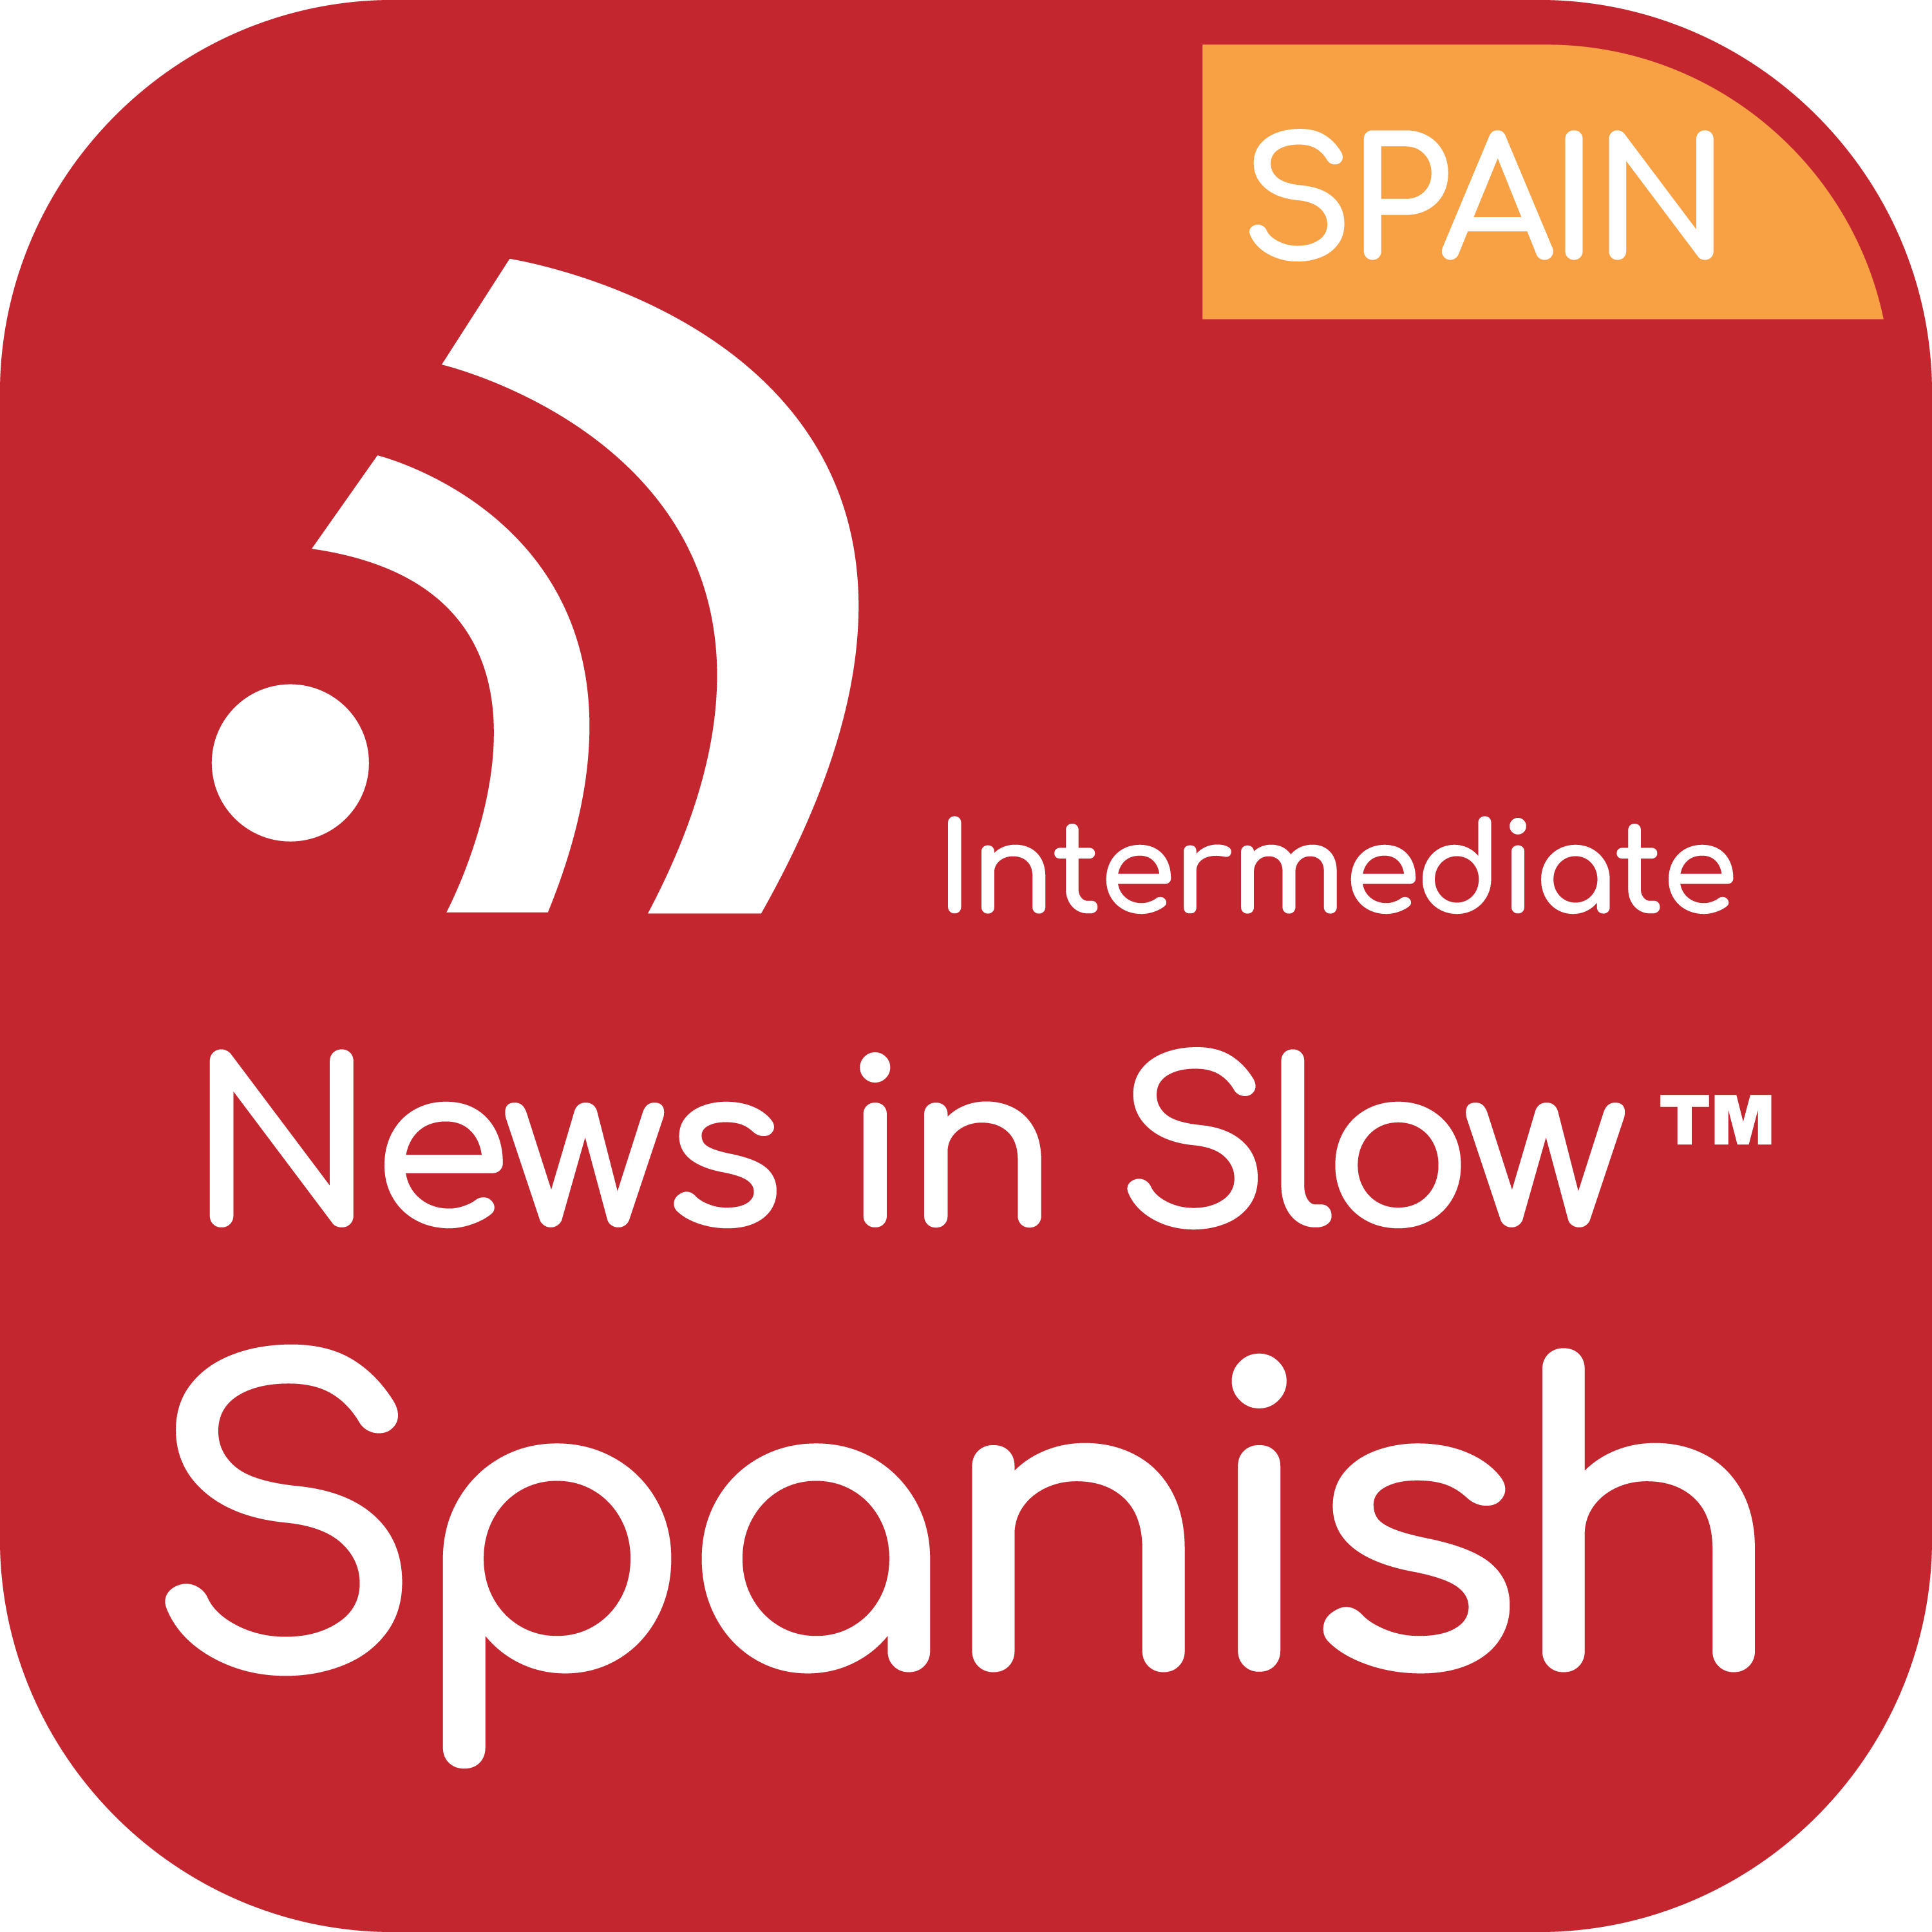 News in Slow Spanish - #639 - Learn Spanish through Current Events